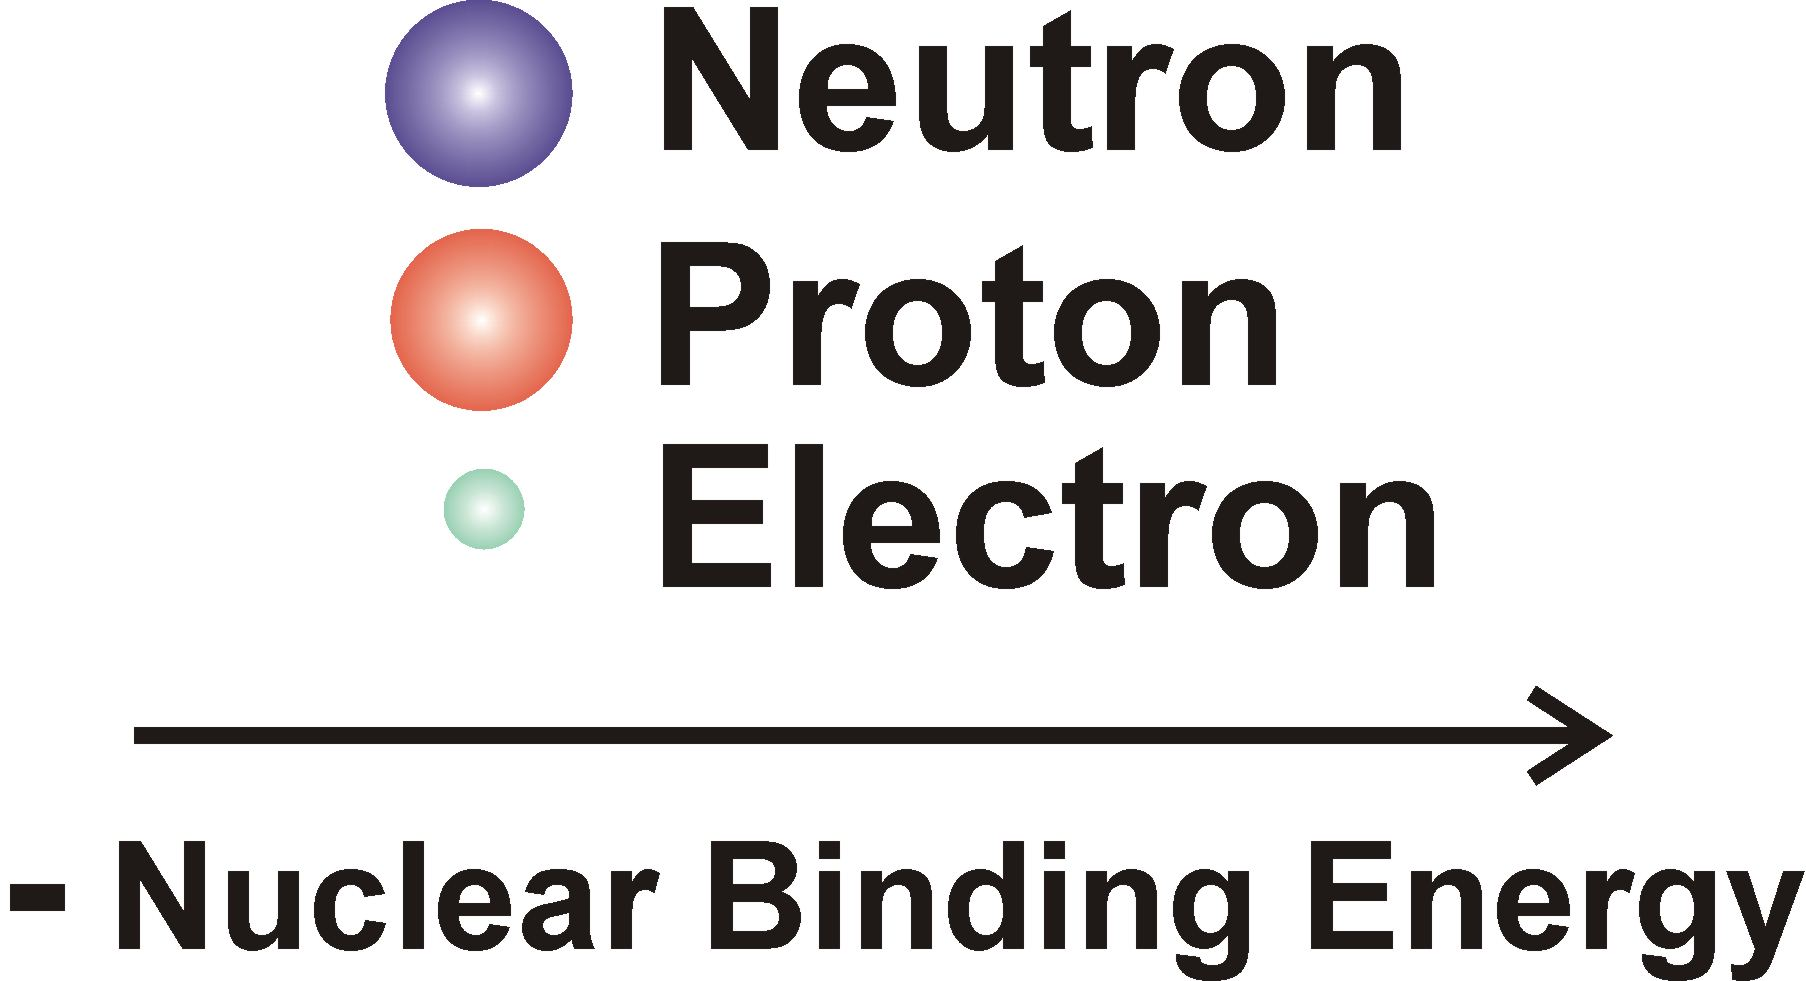 Nuclear Binding Energy Equation Chemistry